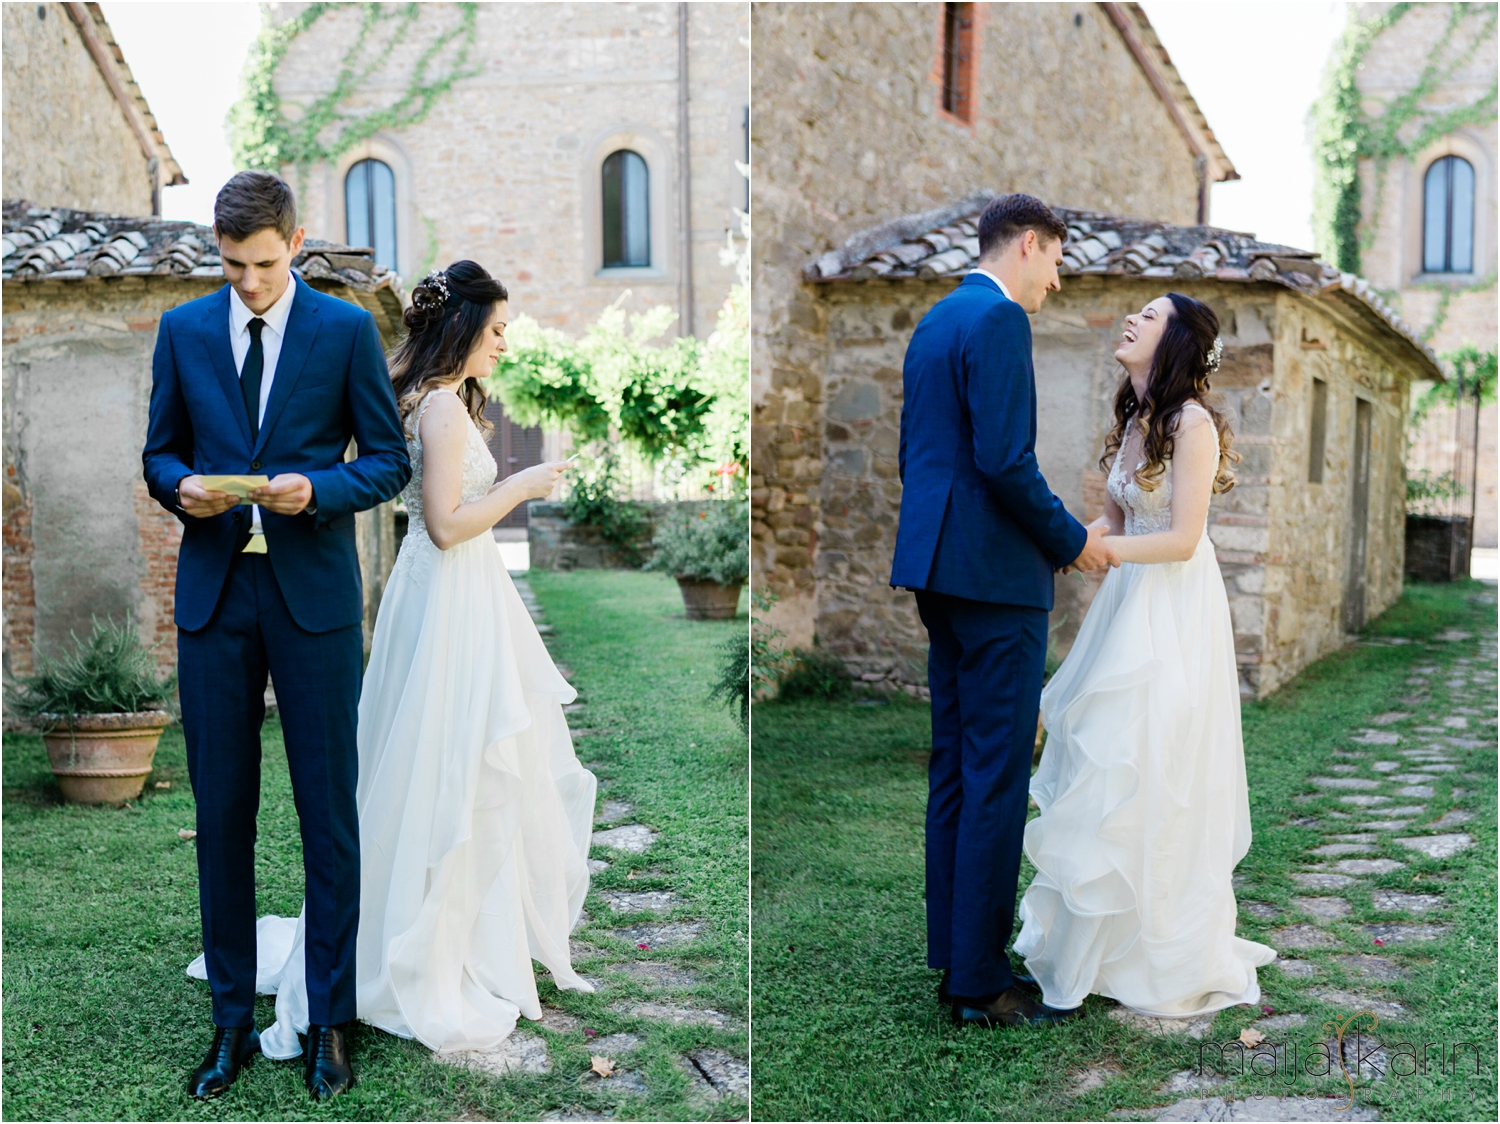 Castelvecchi-Tuscany-Wedding-Maija-Karin-Photography_0017.jpg